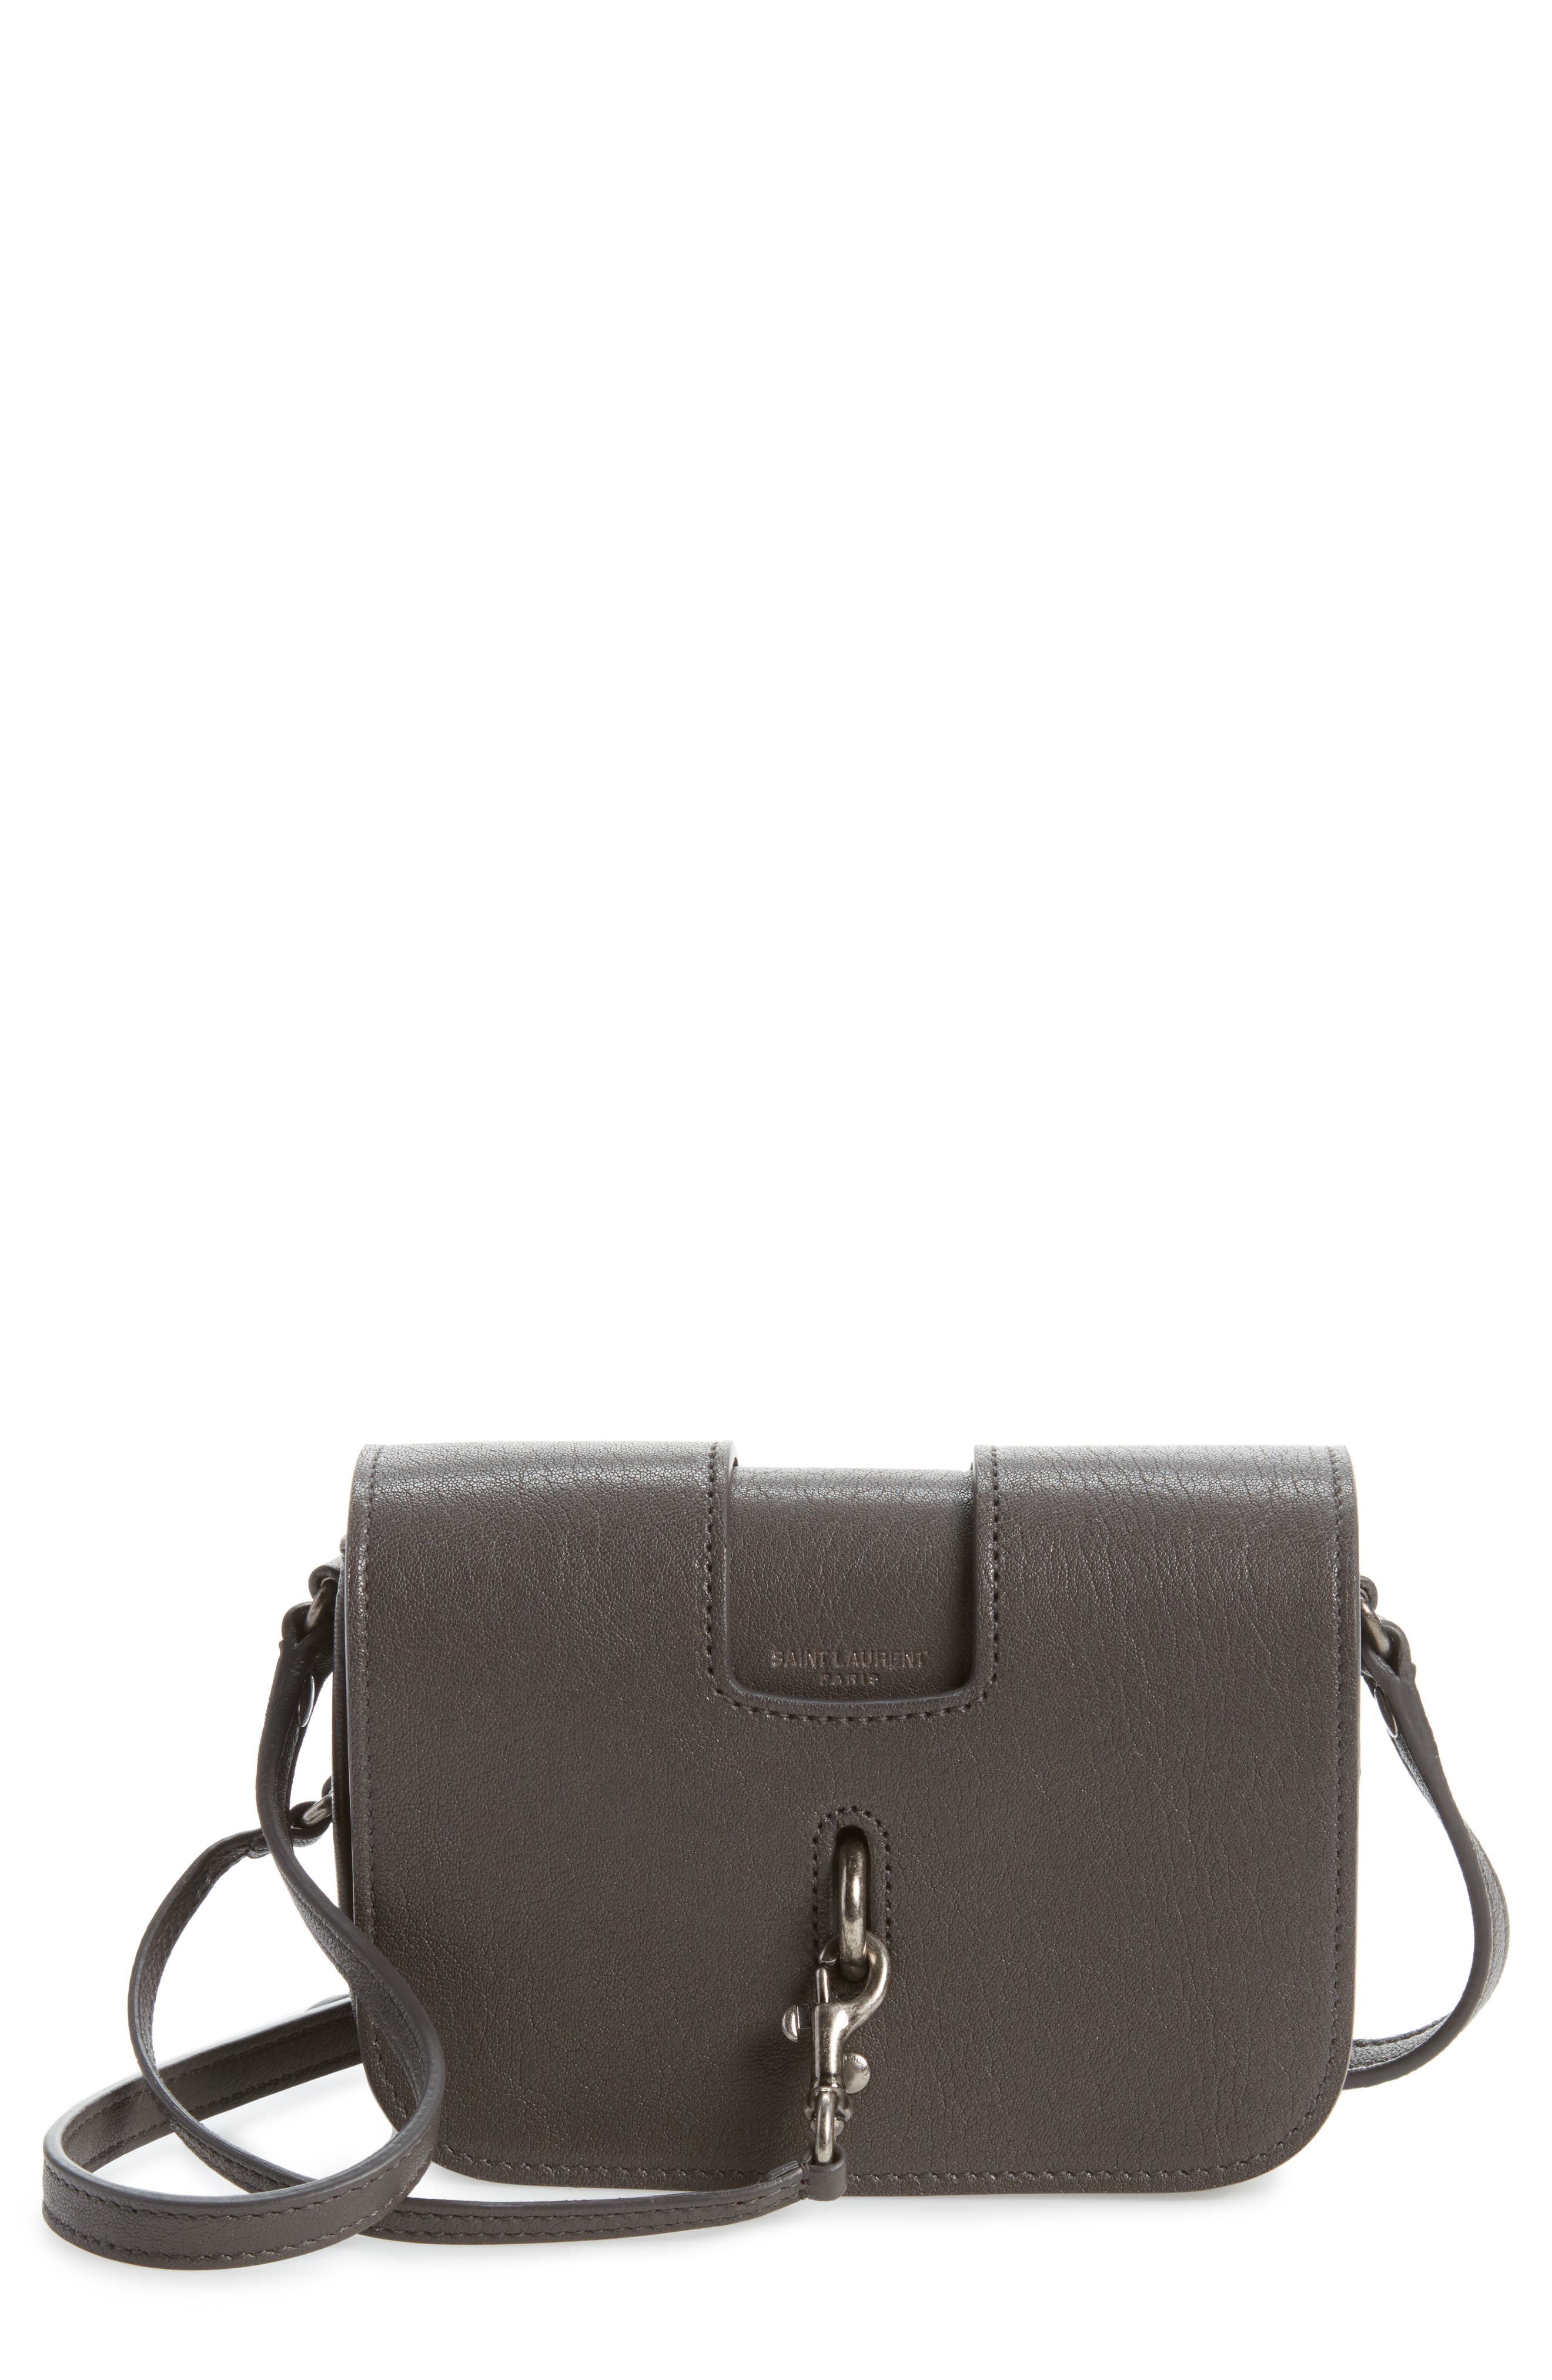 Saint Laurent Calfskin Leather Crossbody Bag